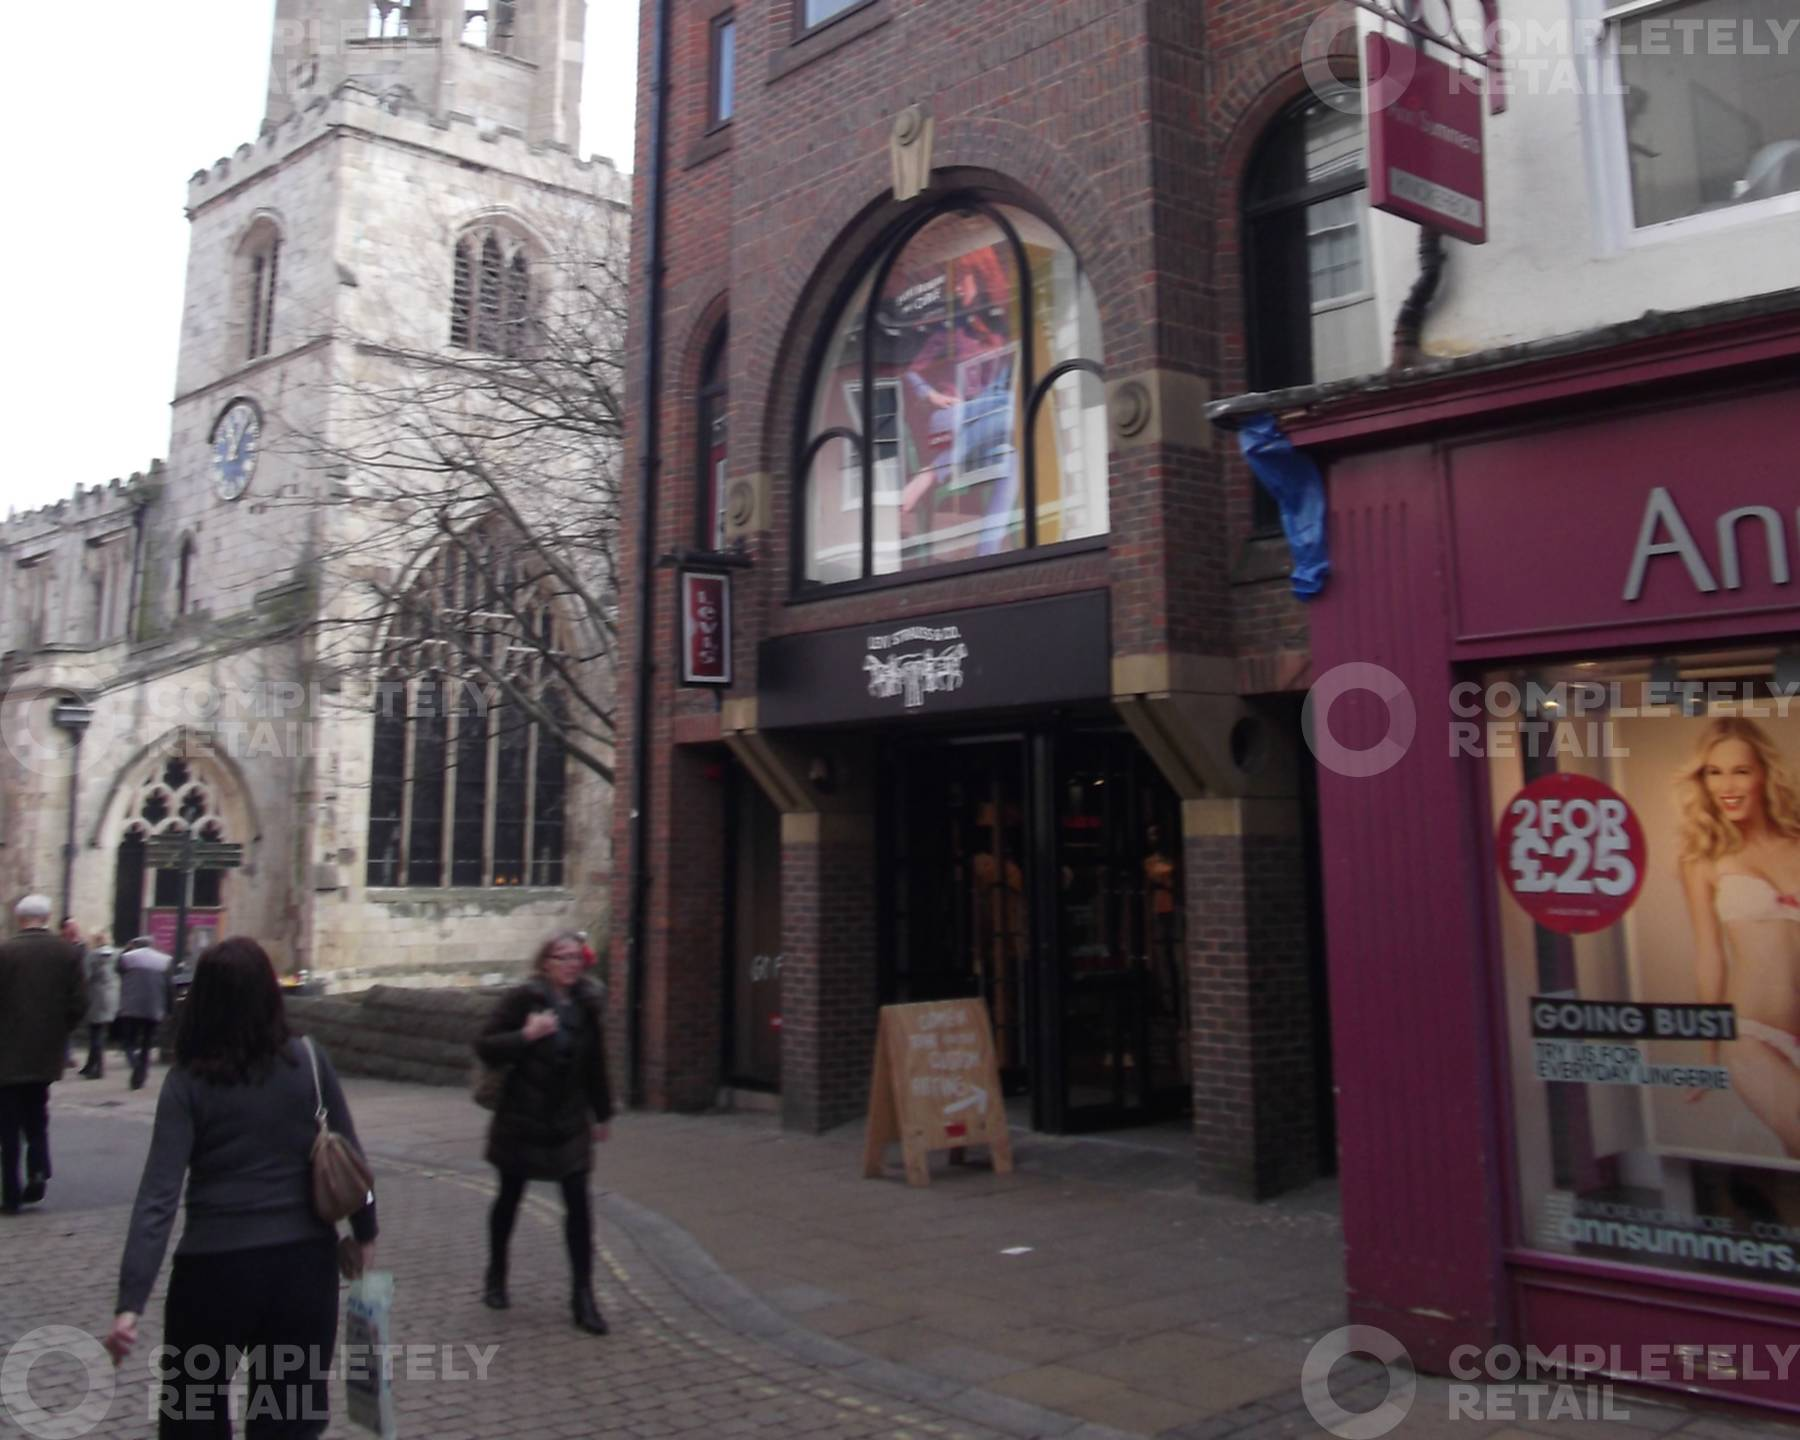 17-18 High Ousegate and 19 Coppergate